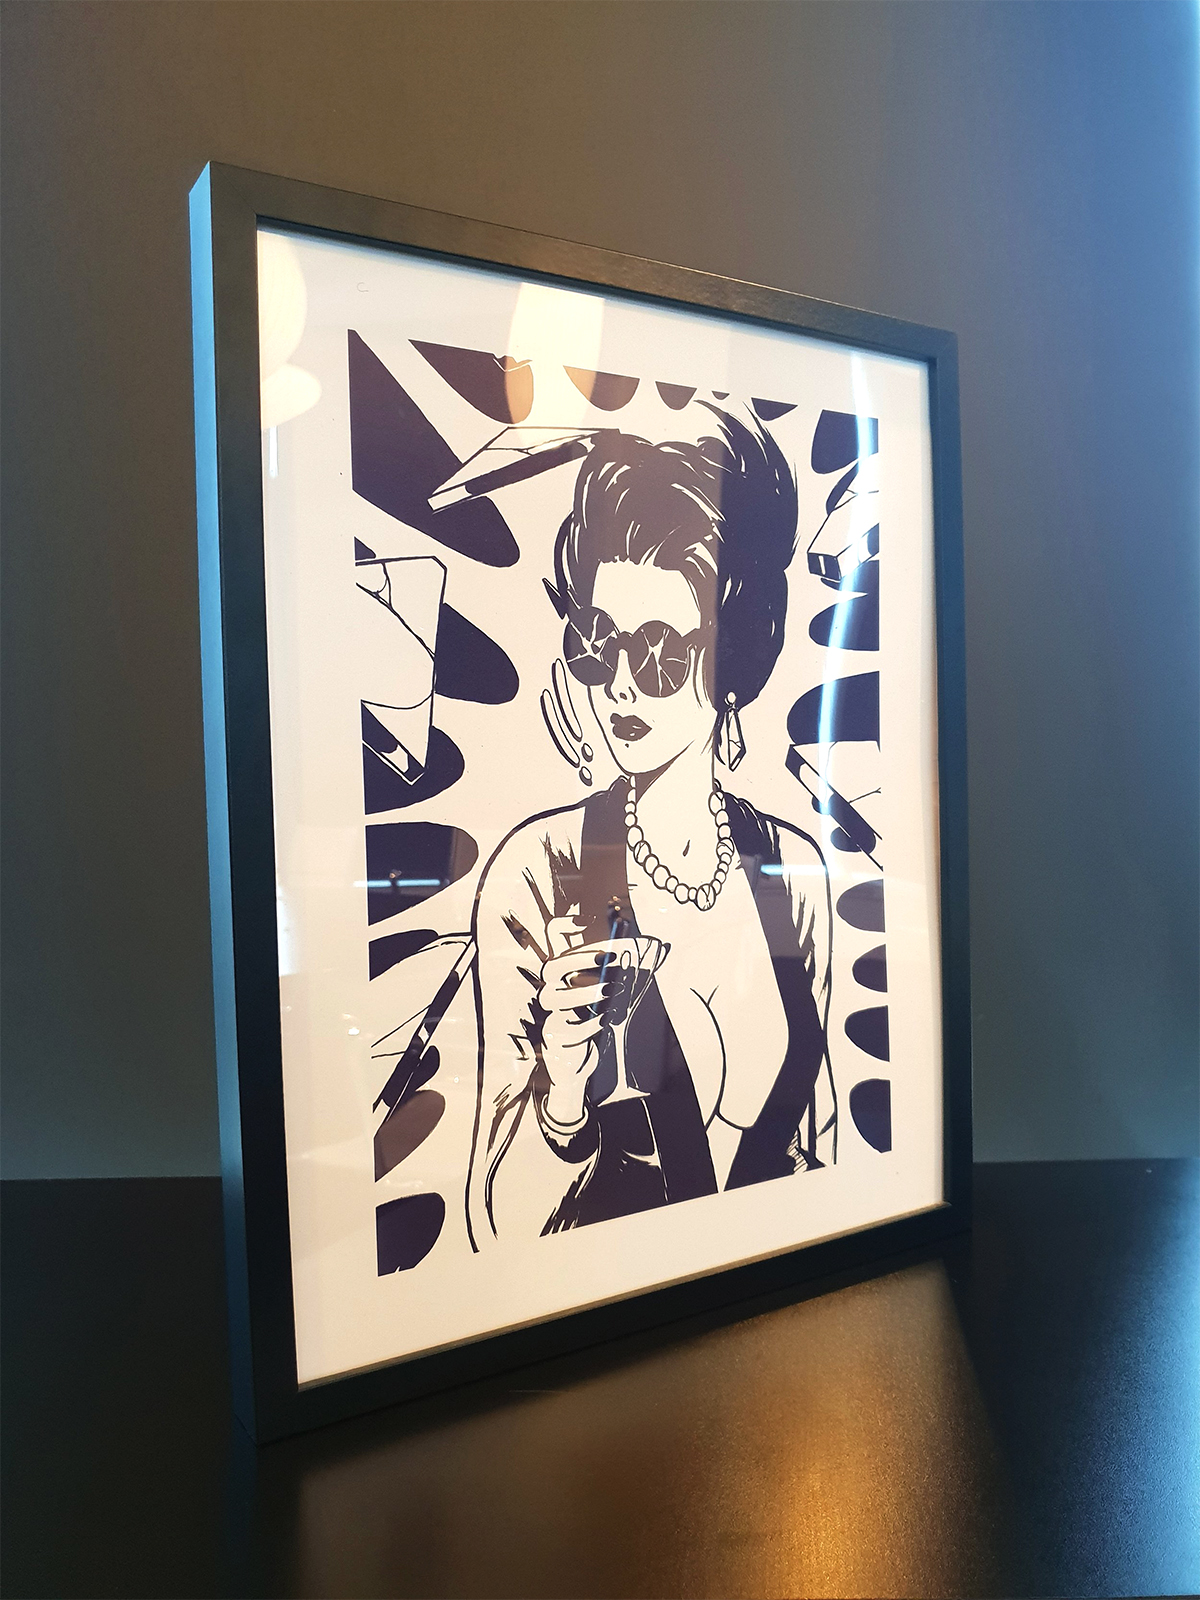 'Martini Crash' Framed print from the 'Selected Print Works' Exhibition. SOLD.